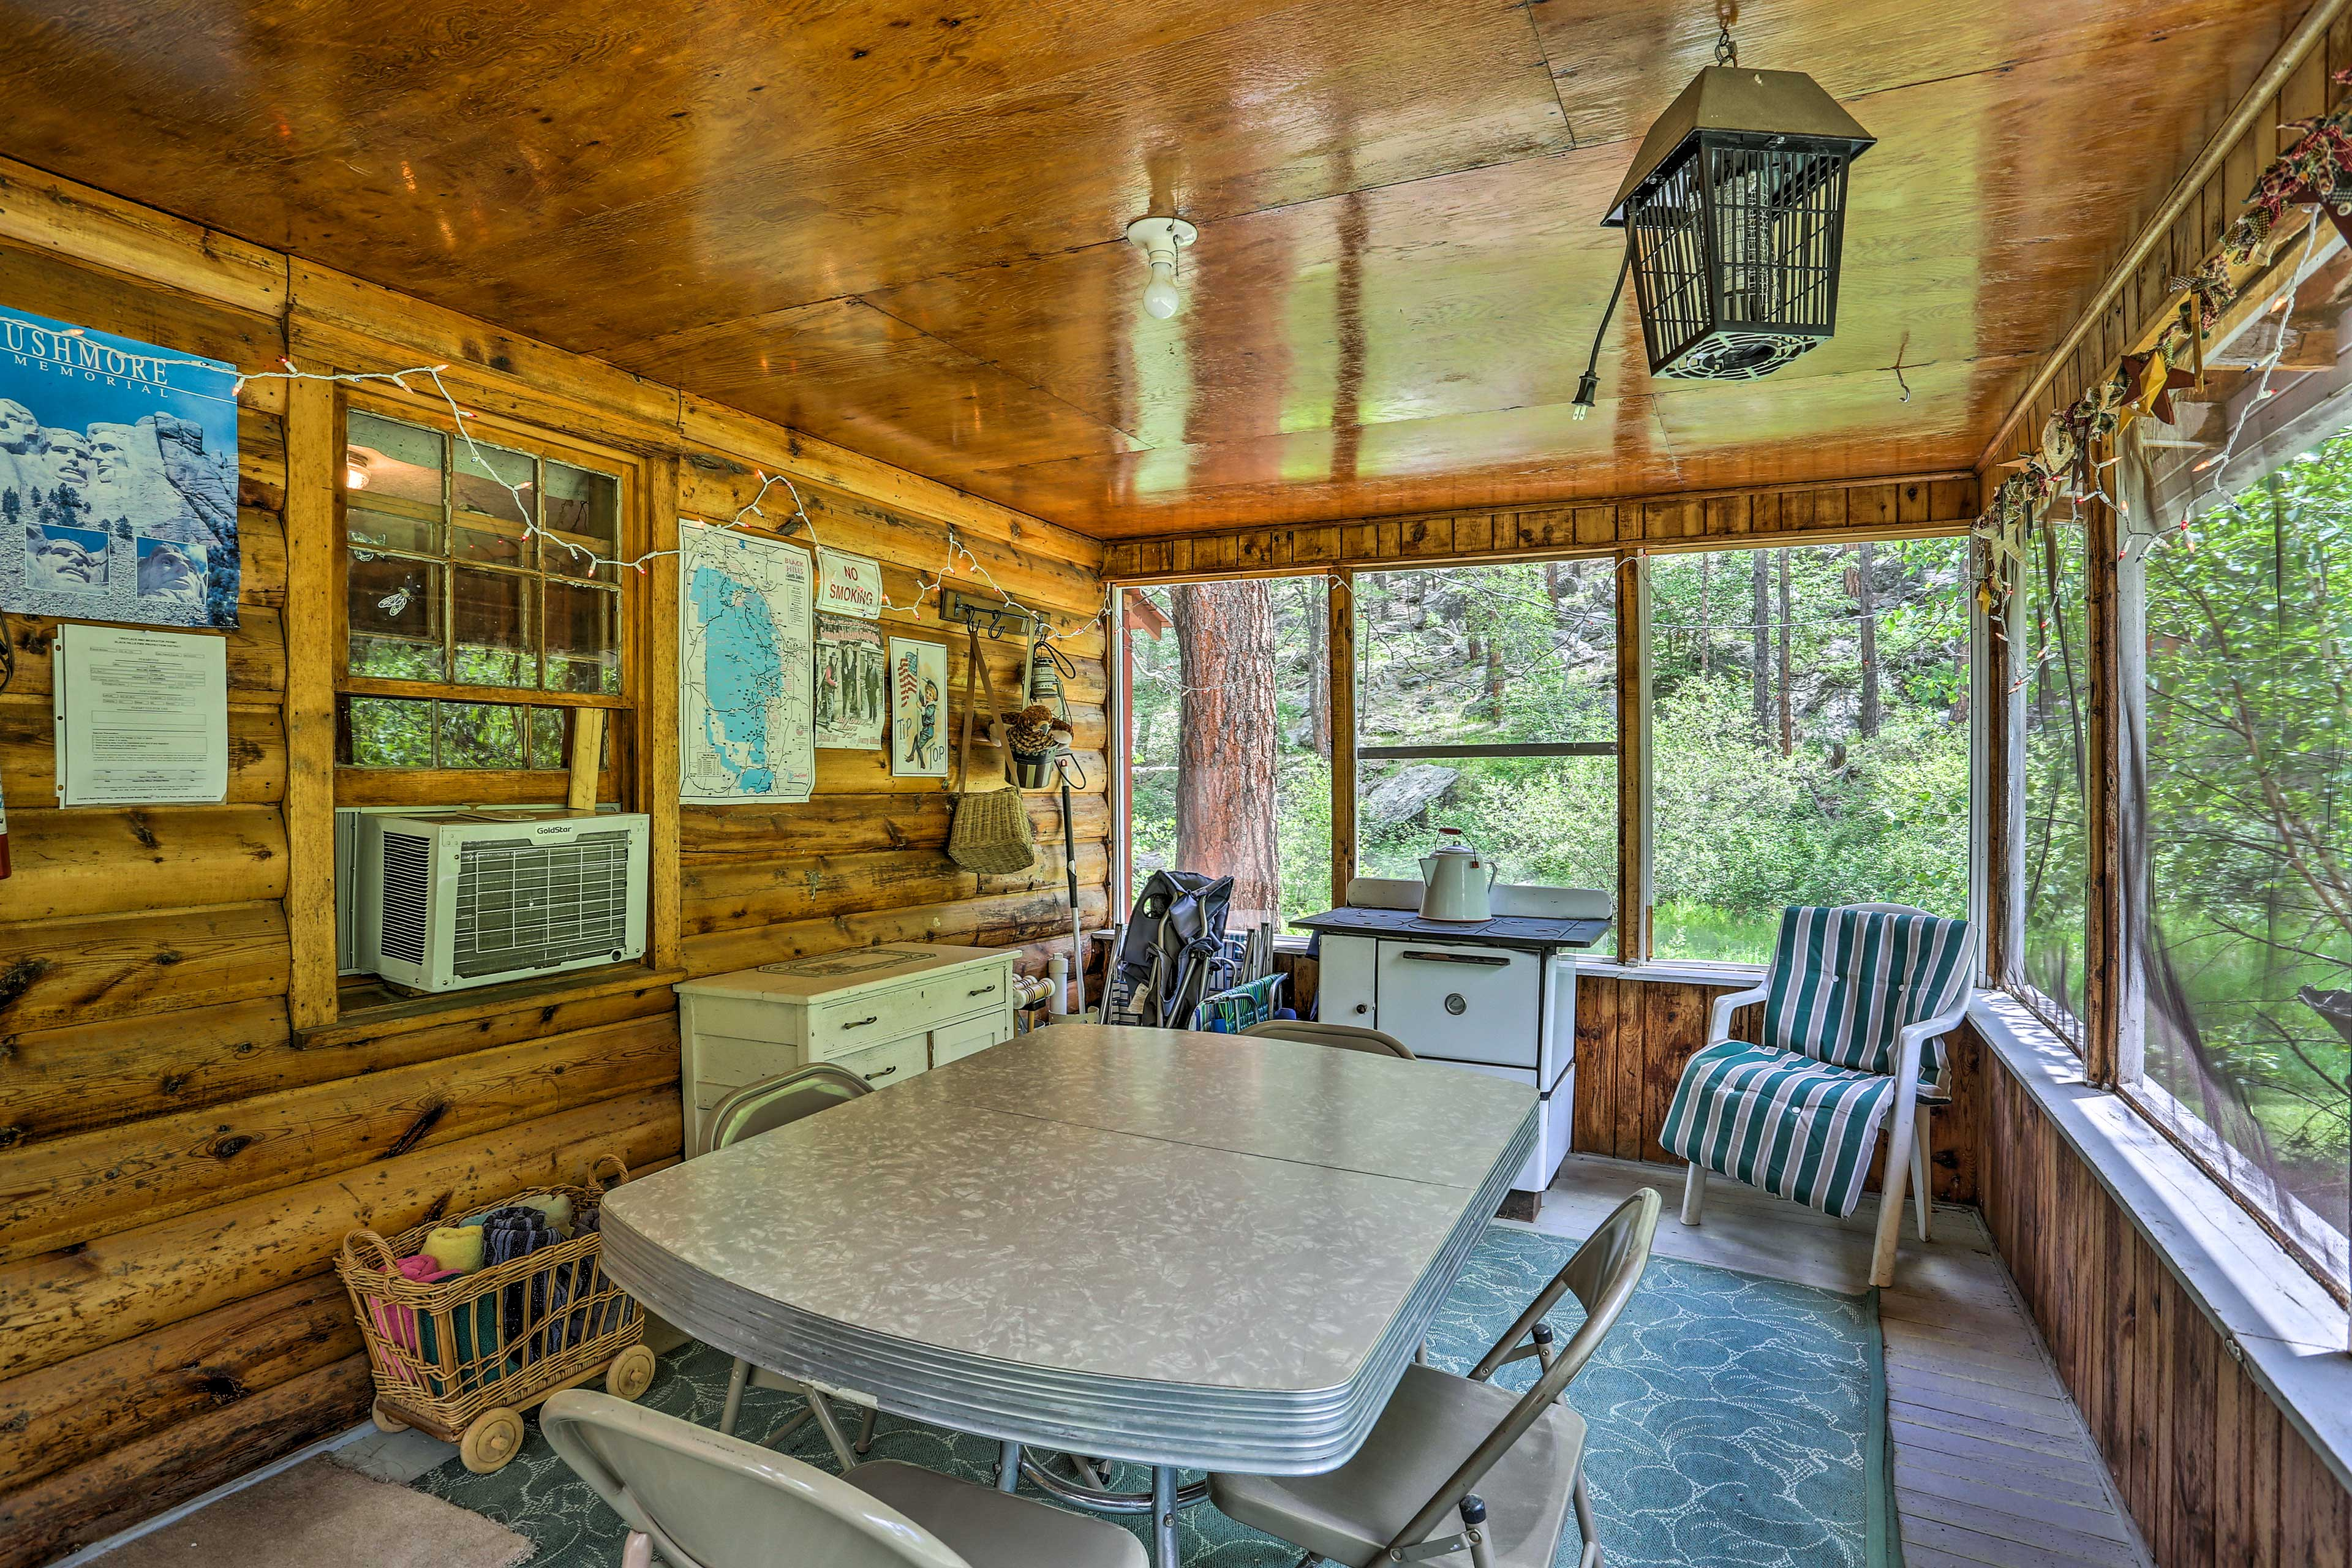 Play a board game or card game in the sunroom.